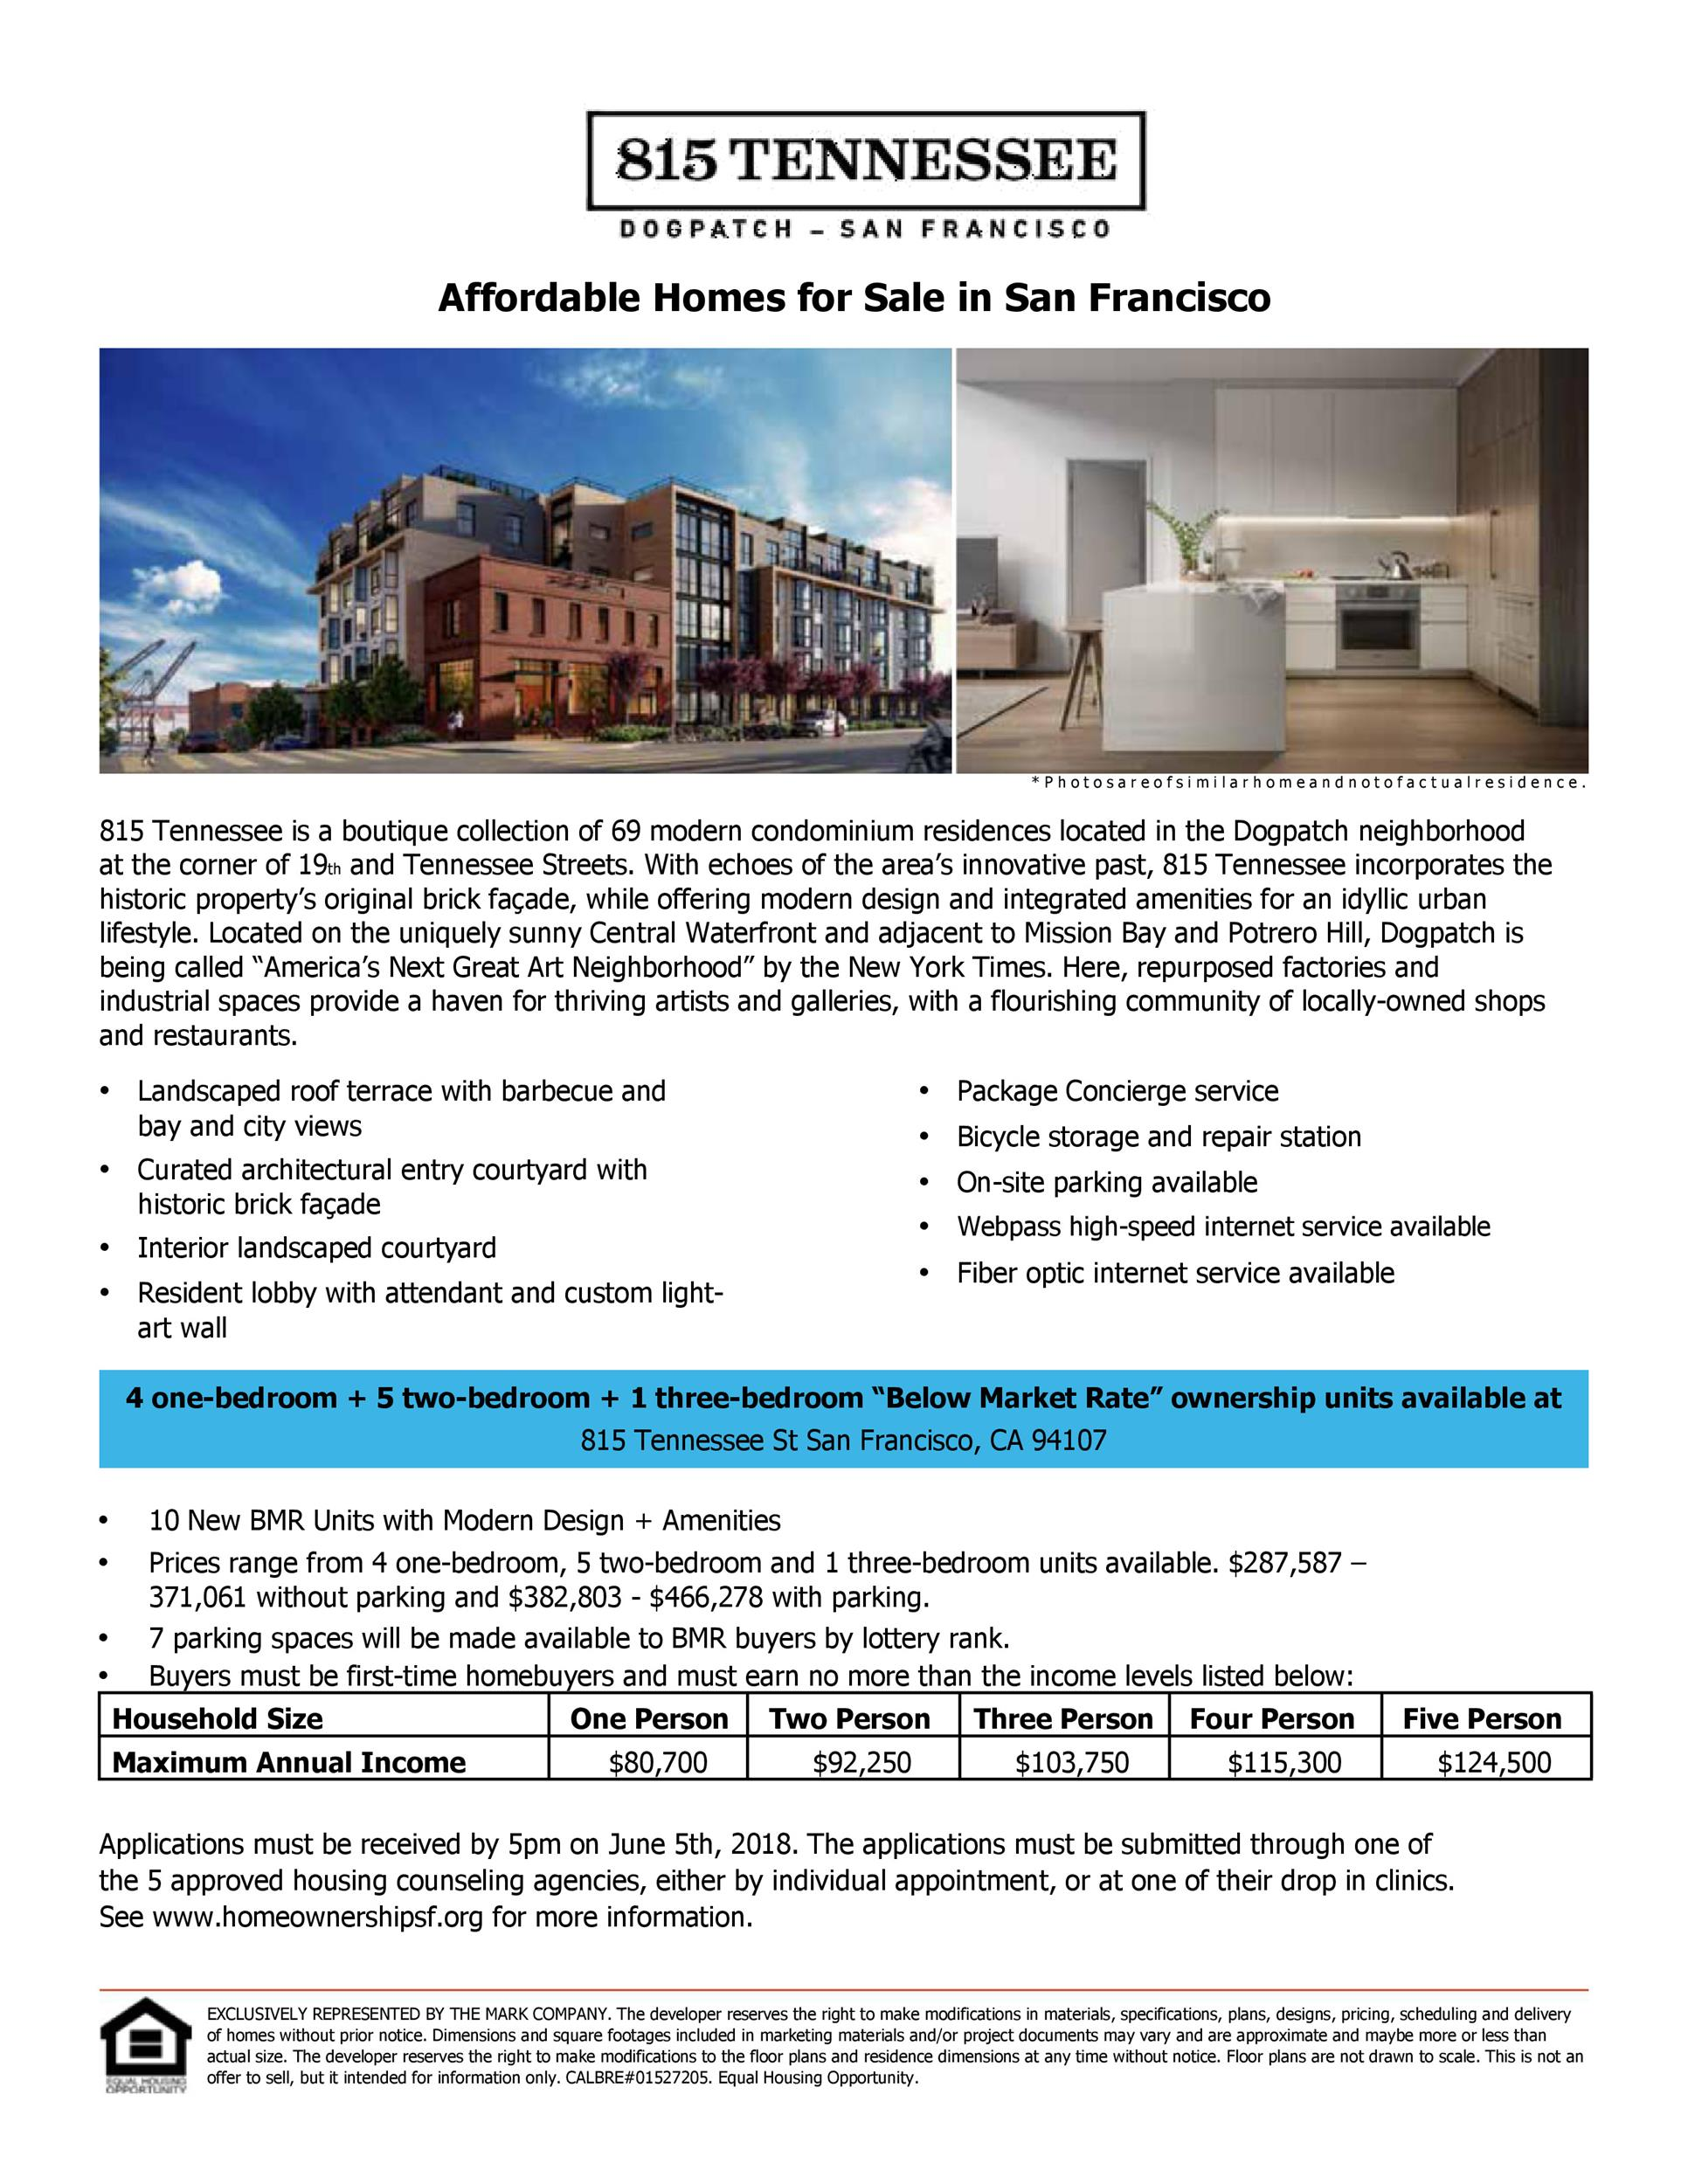 Free house for sale flyer 23